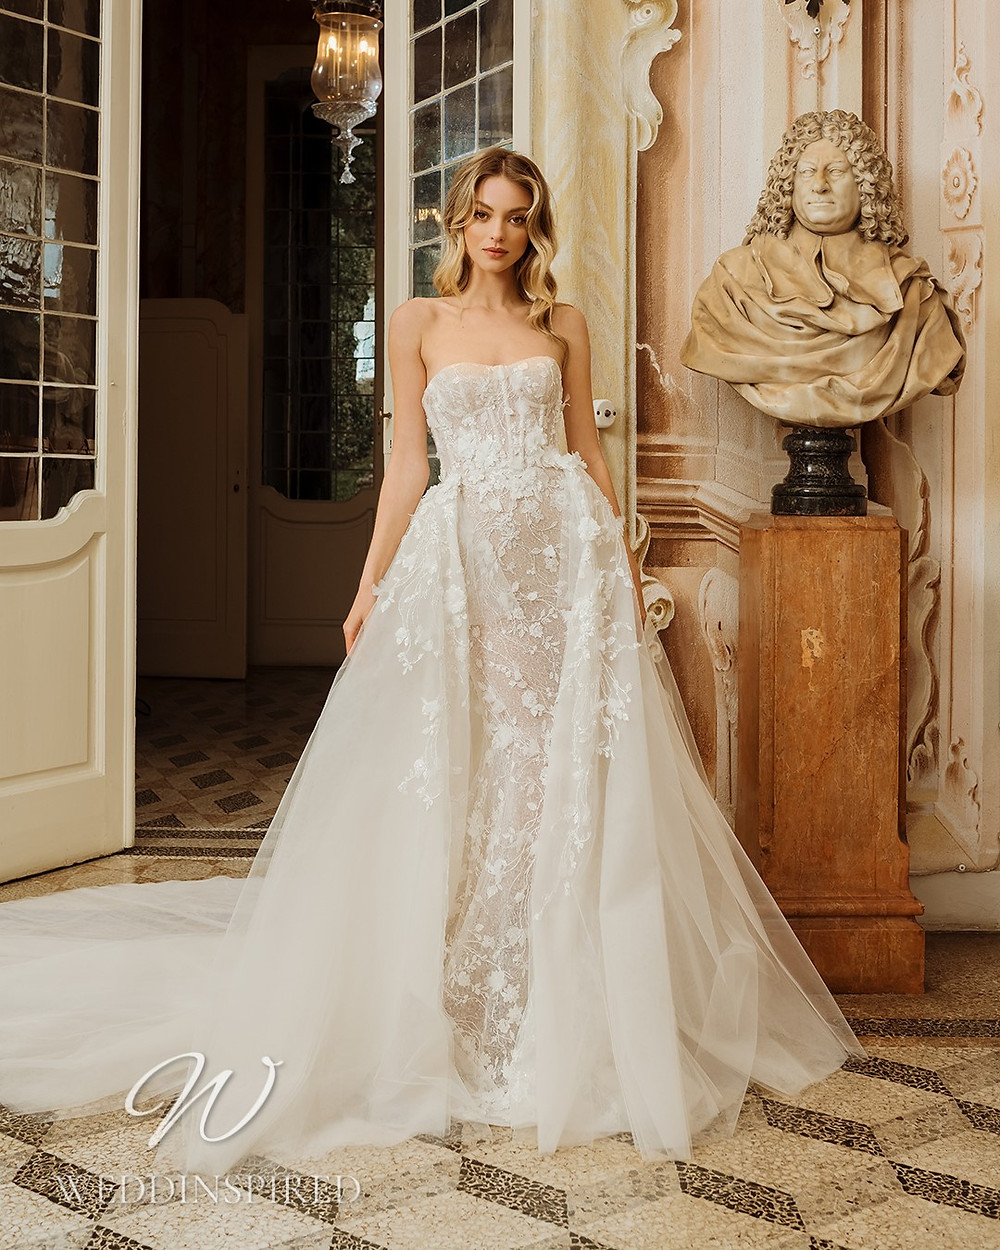 A Berta 2022 strapless lace and tulle mermaid wedding dress with a detachable skirt